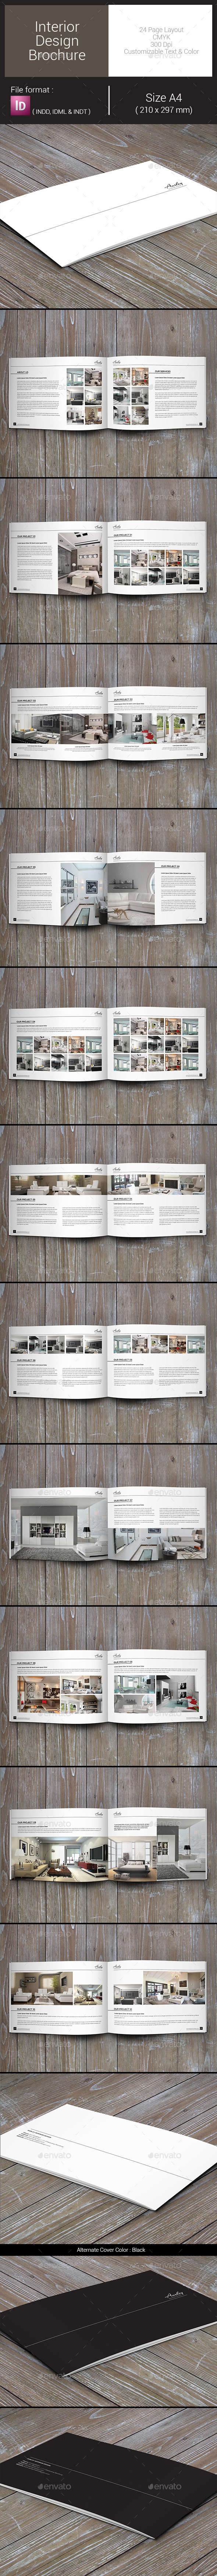 GraphicRiver Interior Design Brochure 9227688